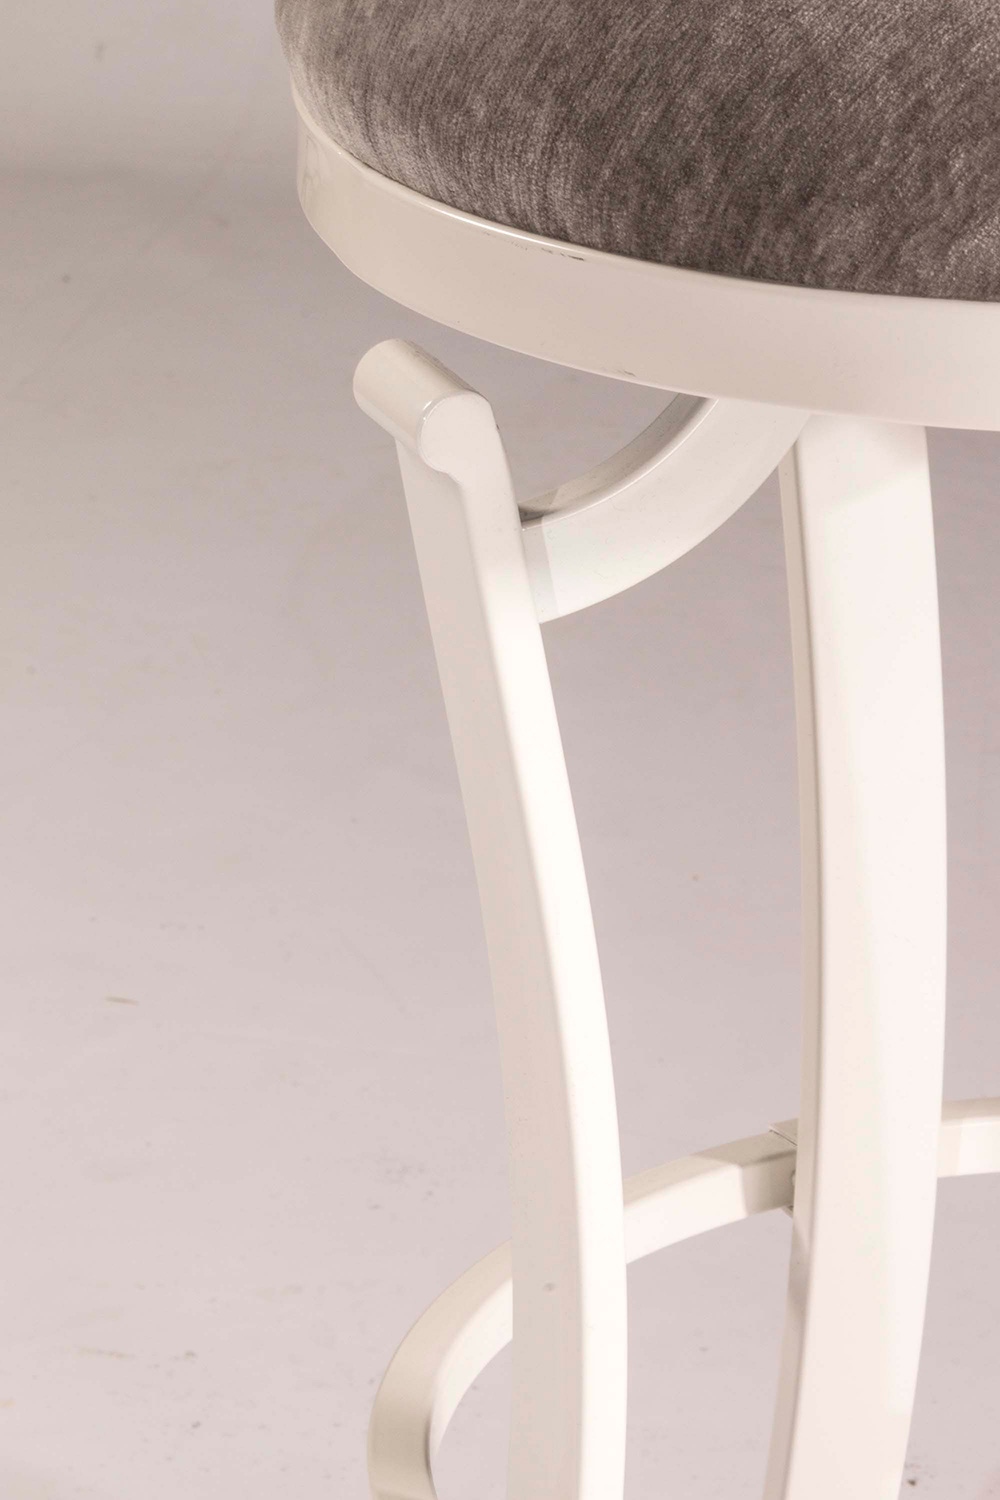 Hillsdale Kelford Swivel Backless Bar Stool - White - Paver Fabric